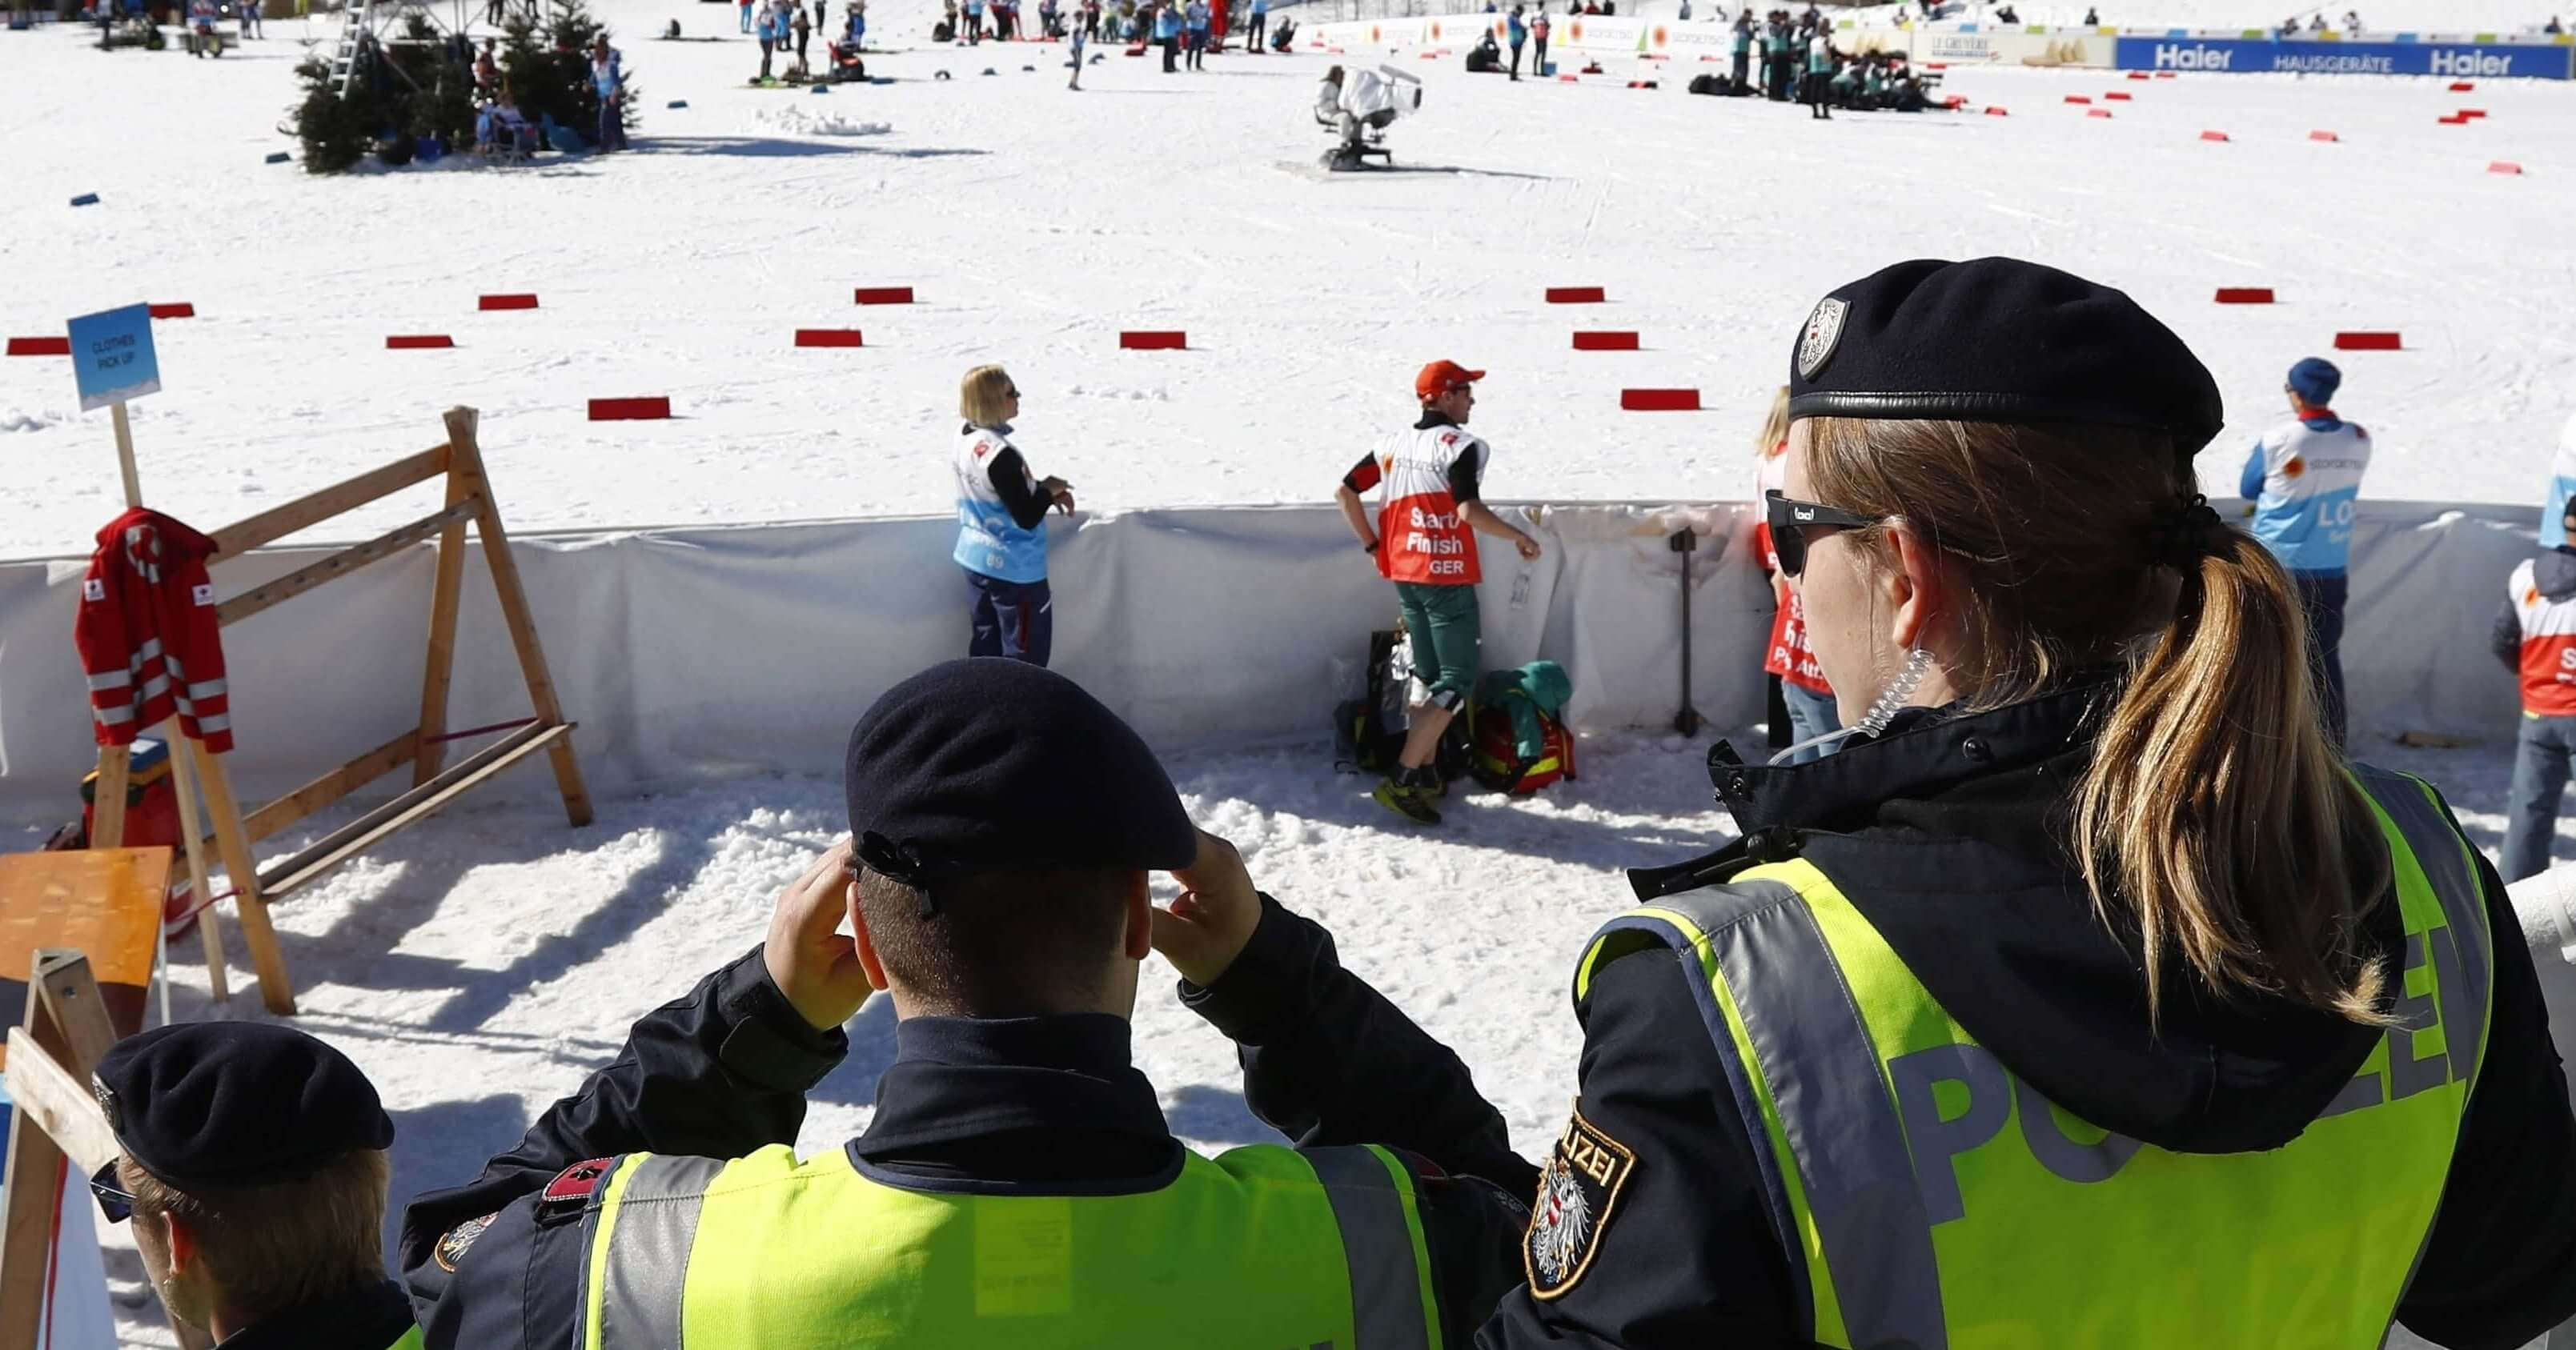 Austrian police officers stand at the finish area of a men's cross country skiing 15km classic competition at the Nordic Ski World Championships in Seefeld, Austria, on Wednesday.